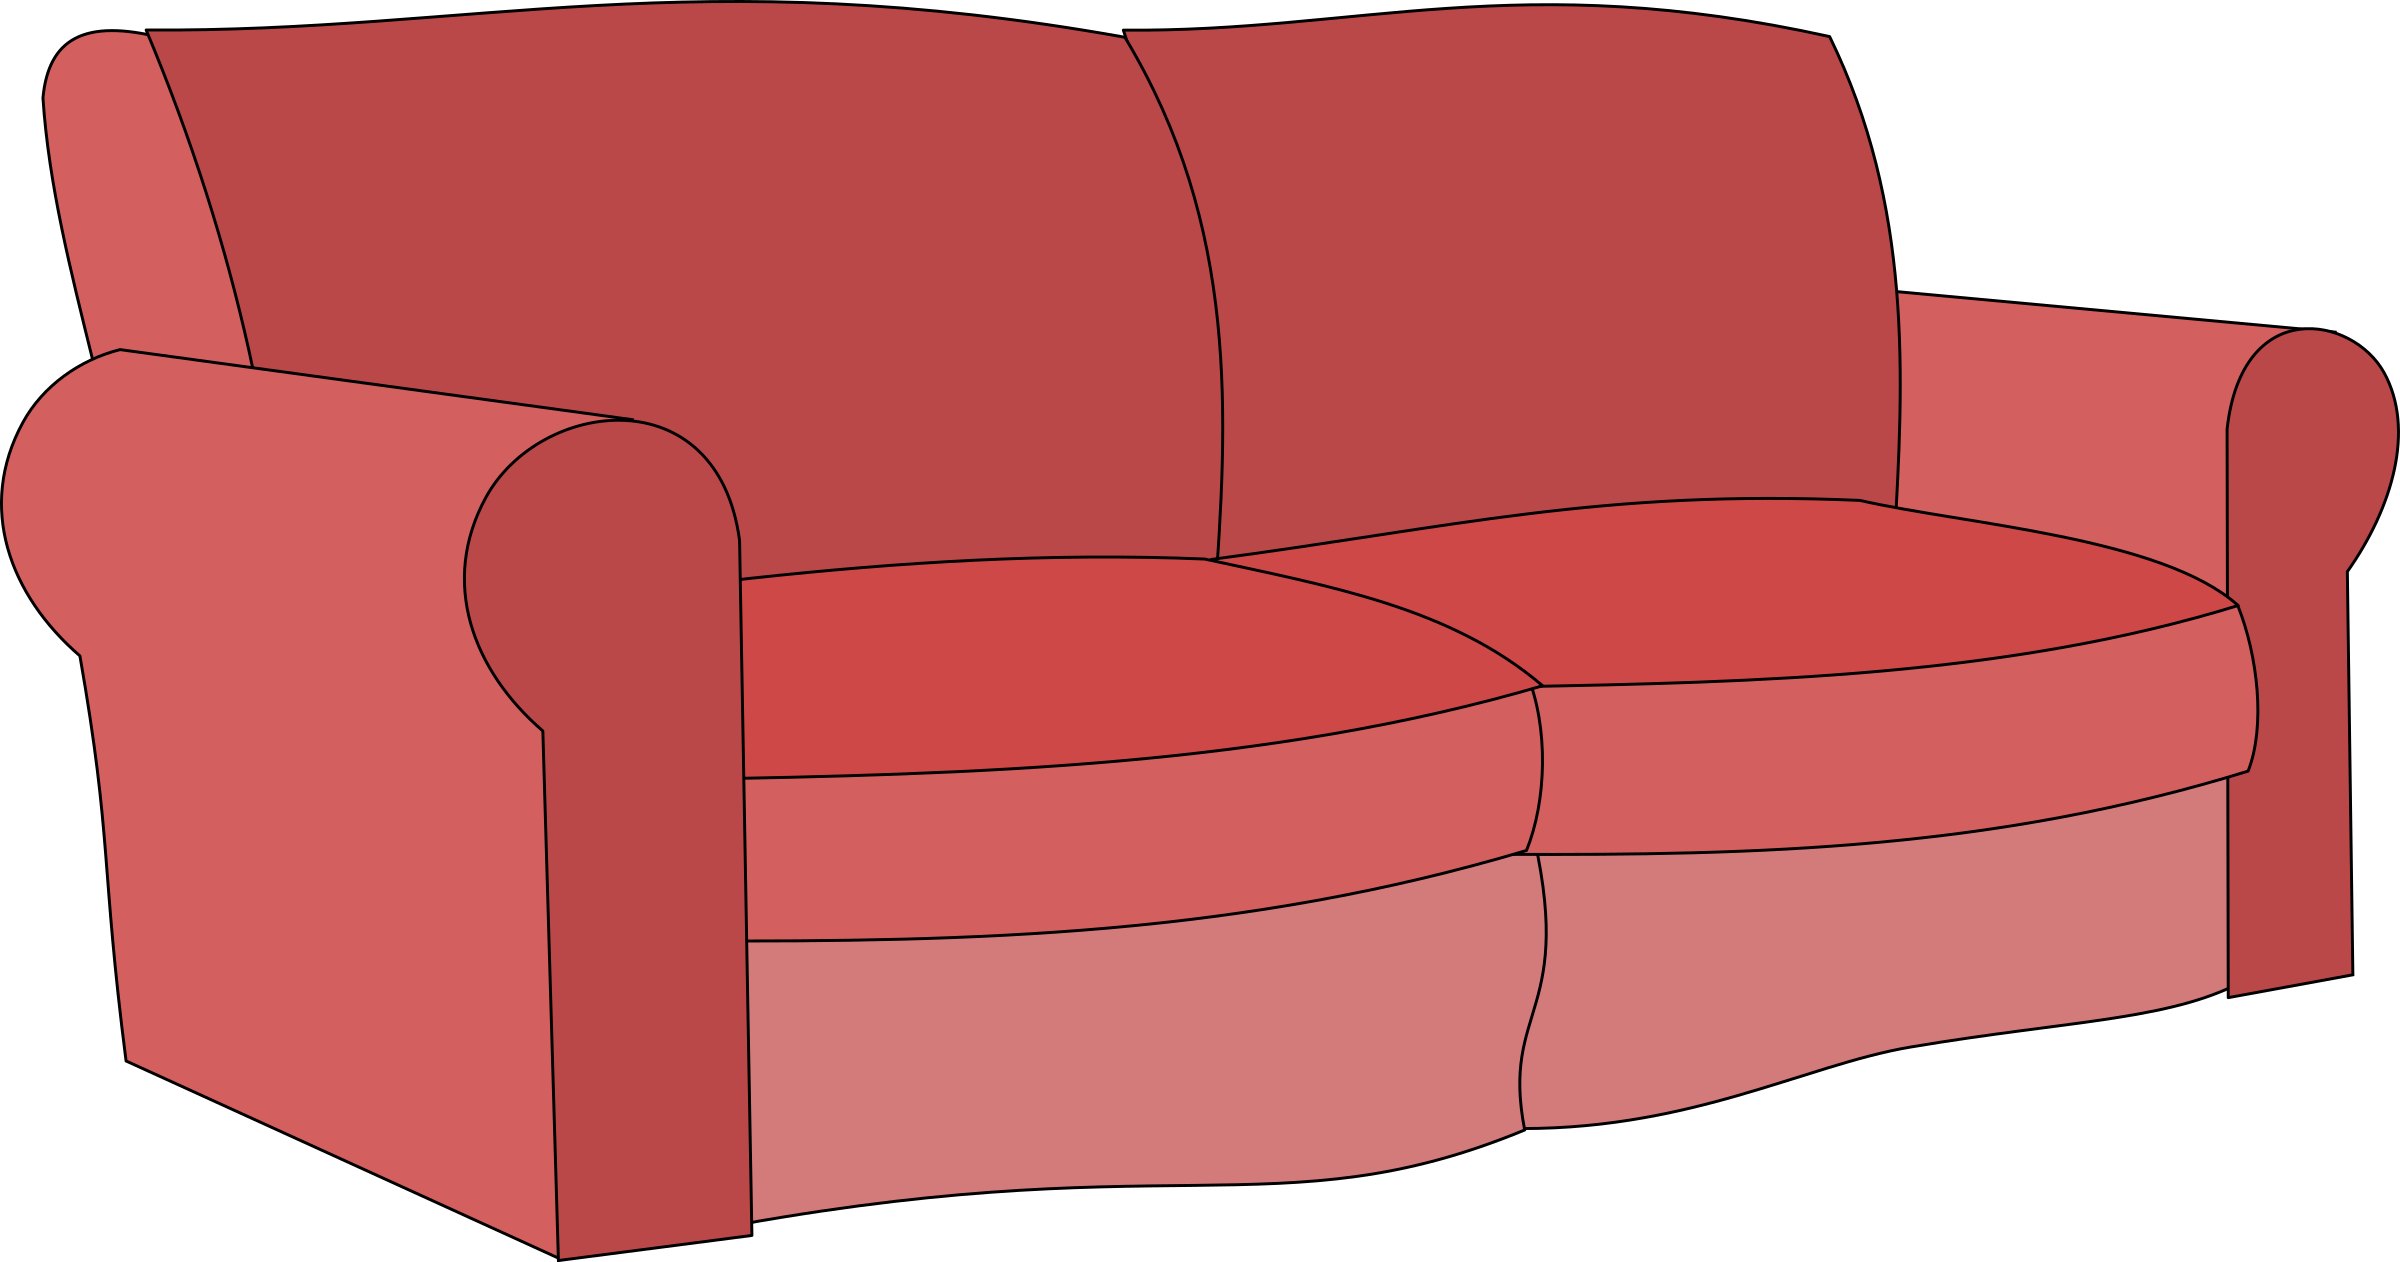 Sofa big image png. Couch clipart small